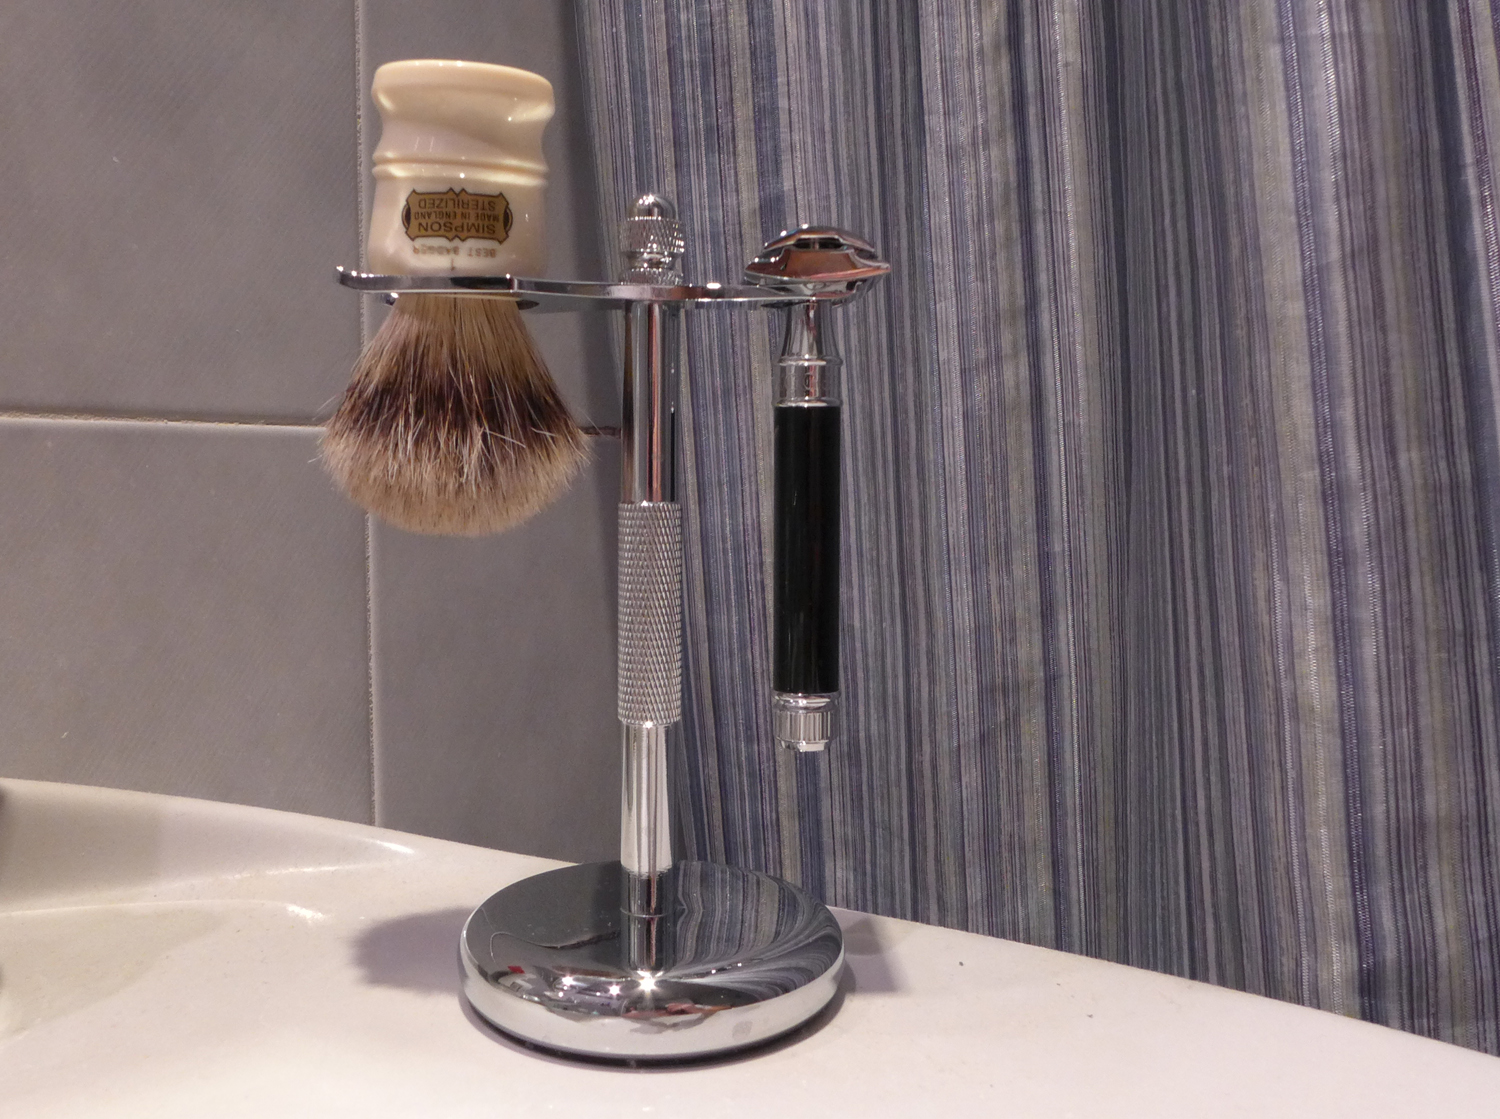 Perfecto Deluxe Chrome Razor and Brush Stand 1